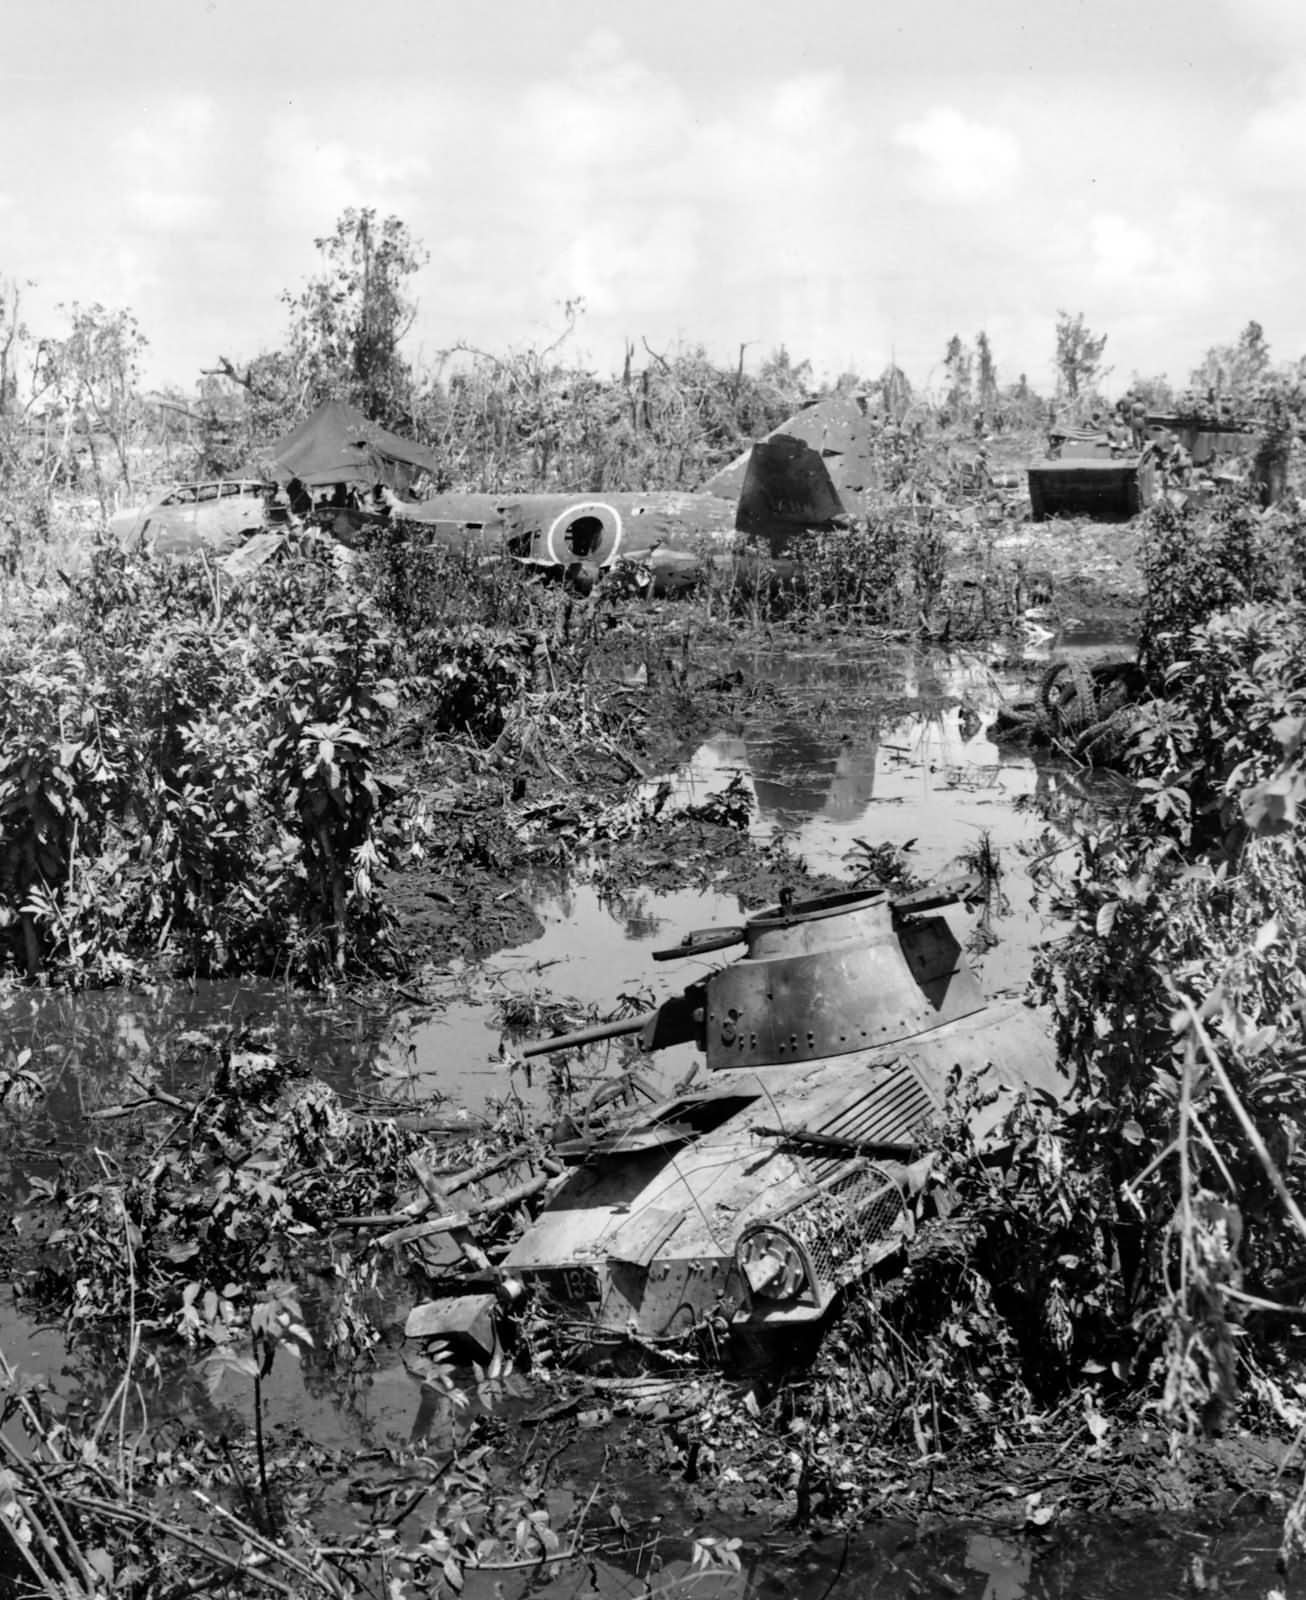 Mitsubishi G4M Betty and Type 95 Ha Go Light Tank wrecks